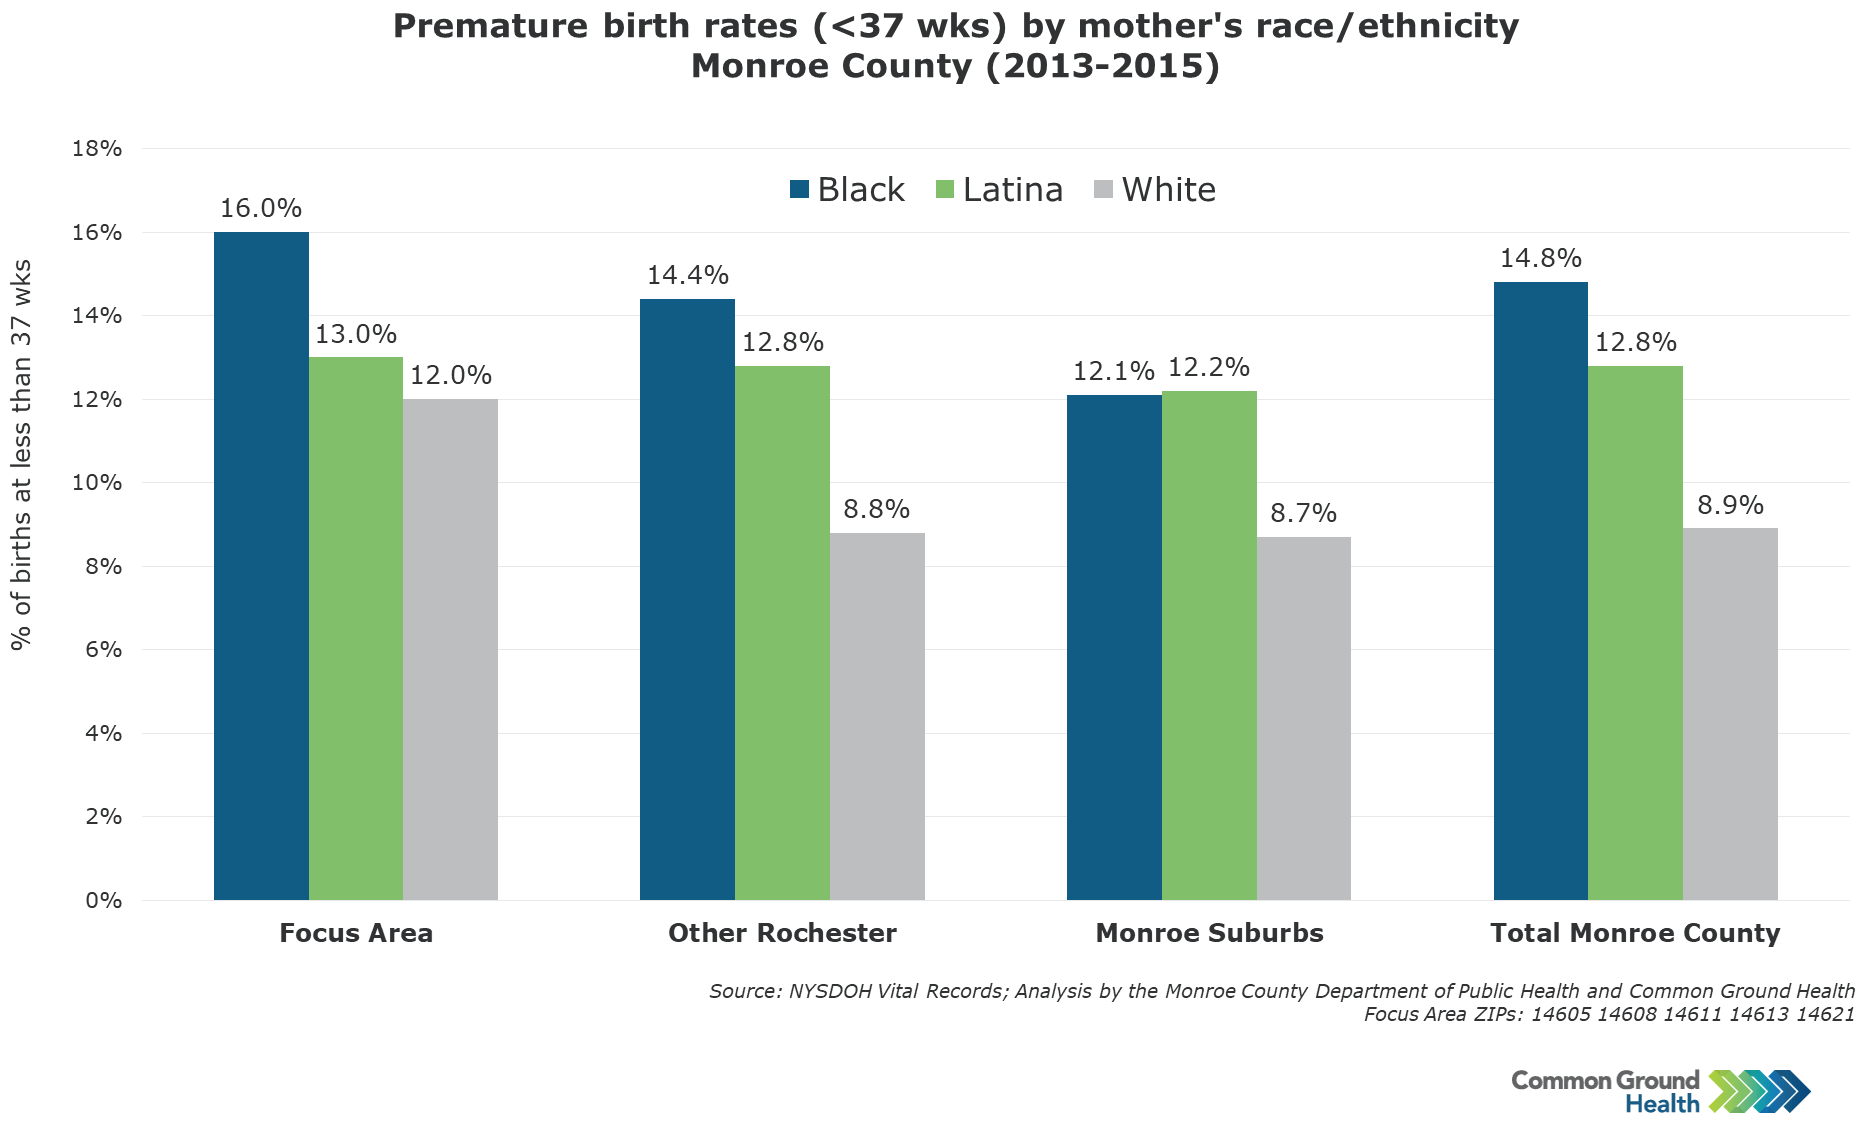 Premature Birth Rates (<37 weeks) by Mother's Race/Ethnicity